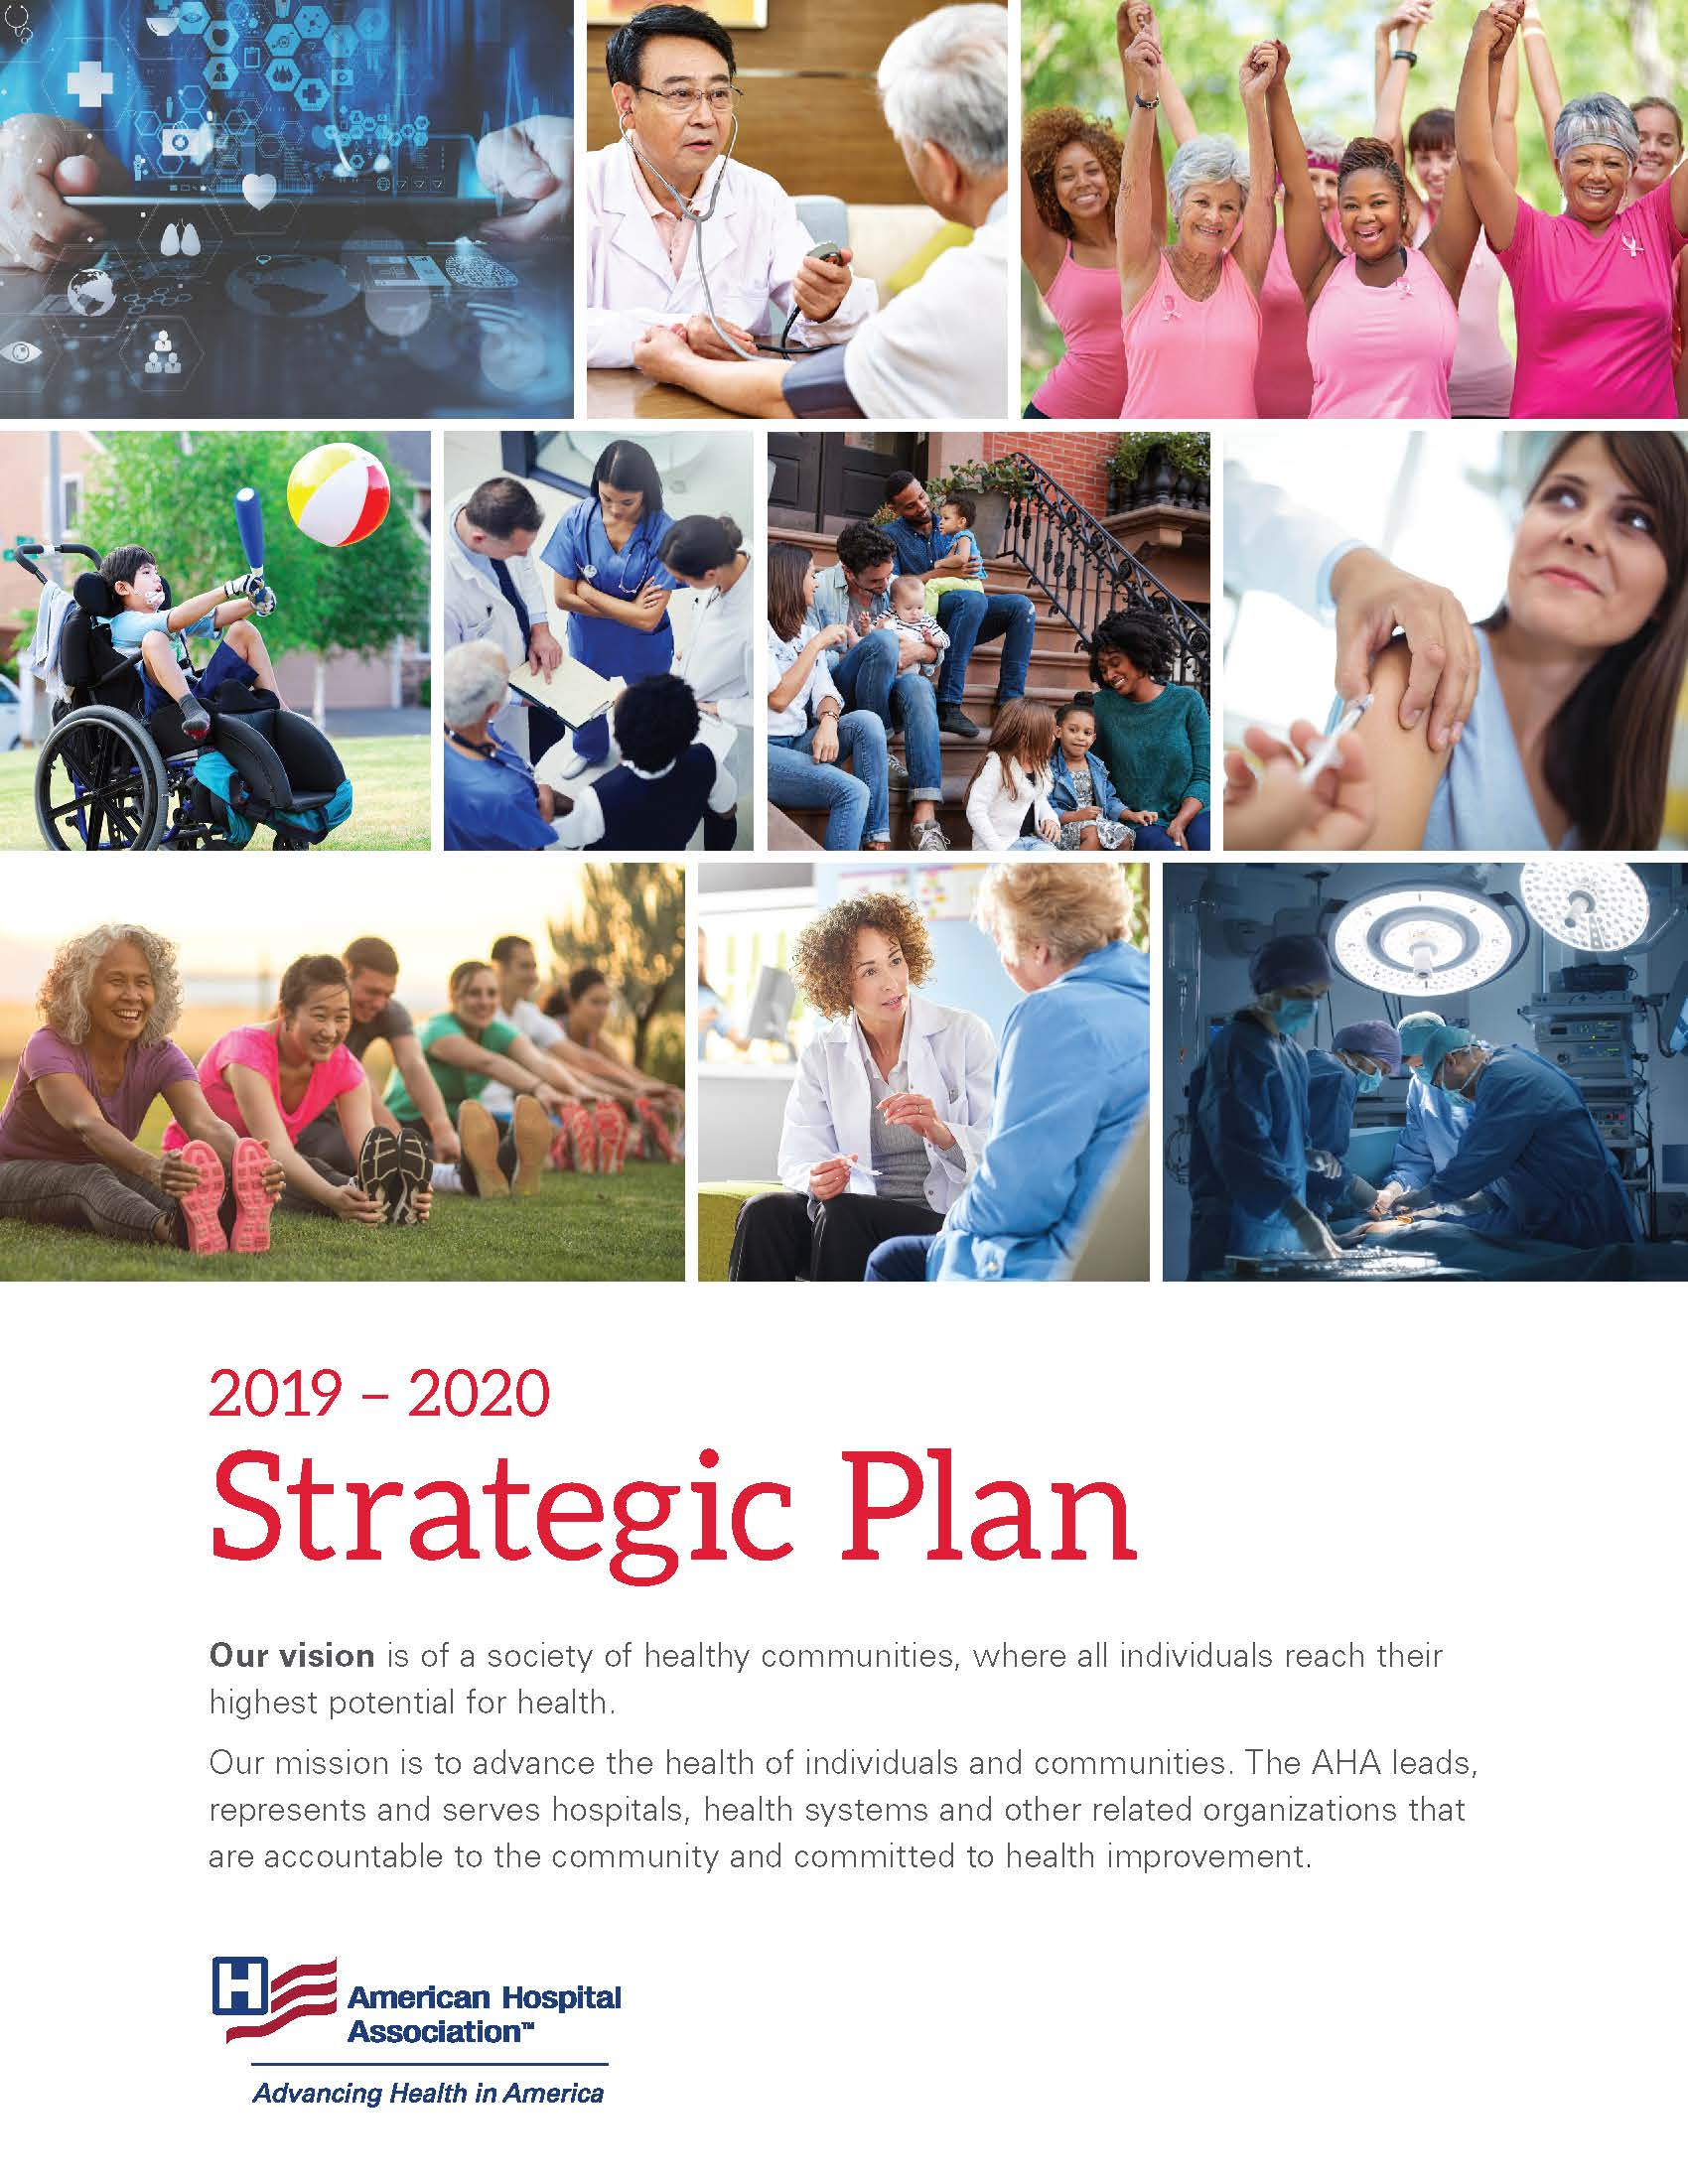 AHA Strategic Plan 2019-2020 cover